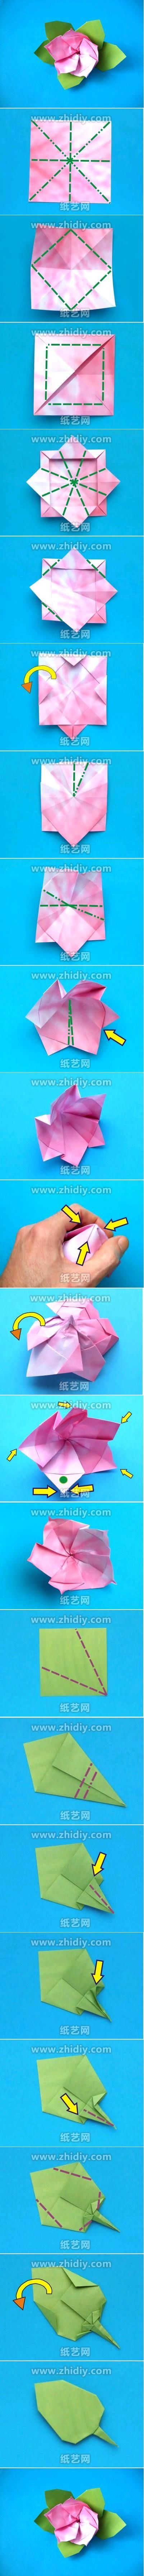 Origami Azalea Flower Folding Instructions Origami Instruction On